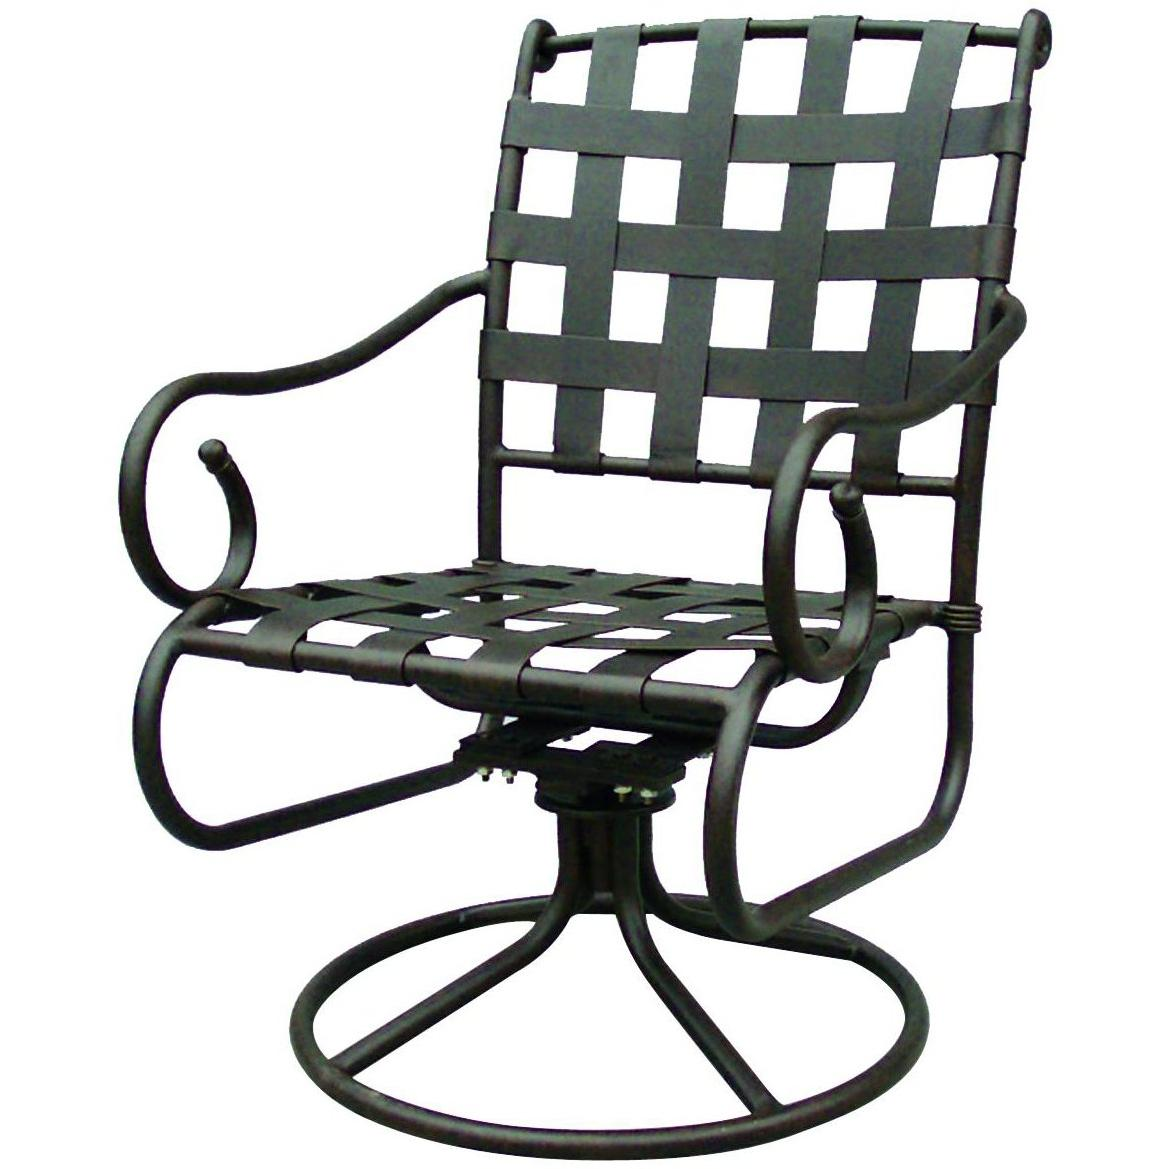 Darlee Malibu Aluminum Outdoor Patio Swivel Rocker Chair With Cushions - Antique Bronze